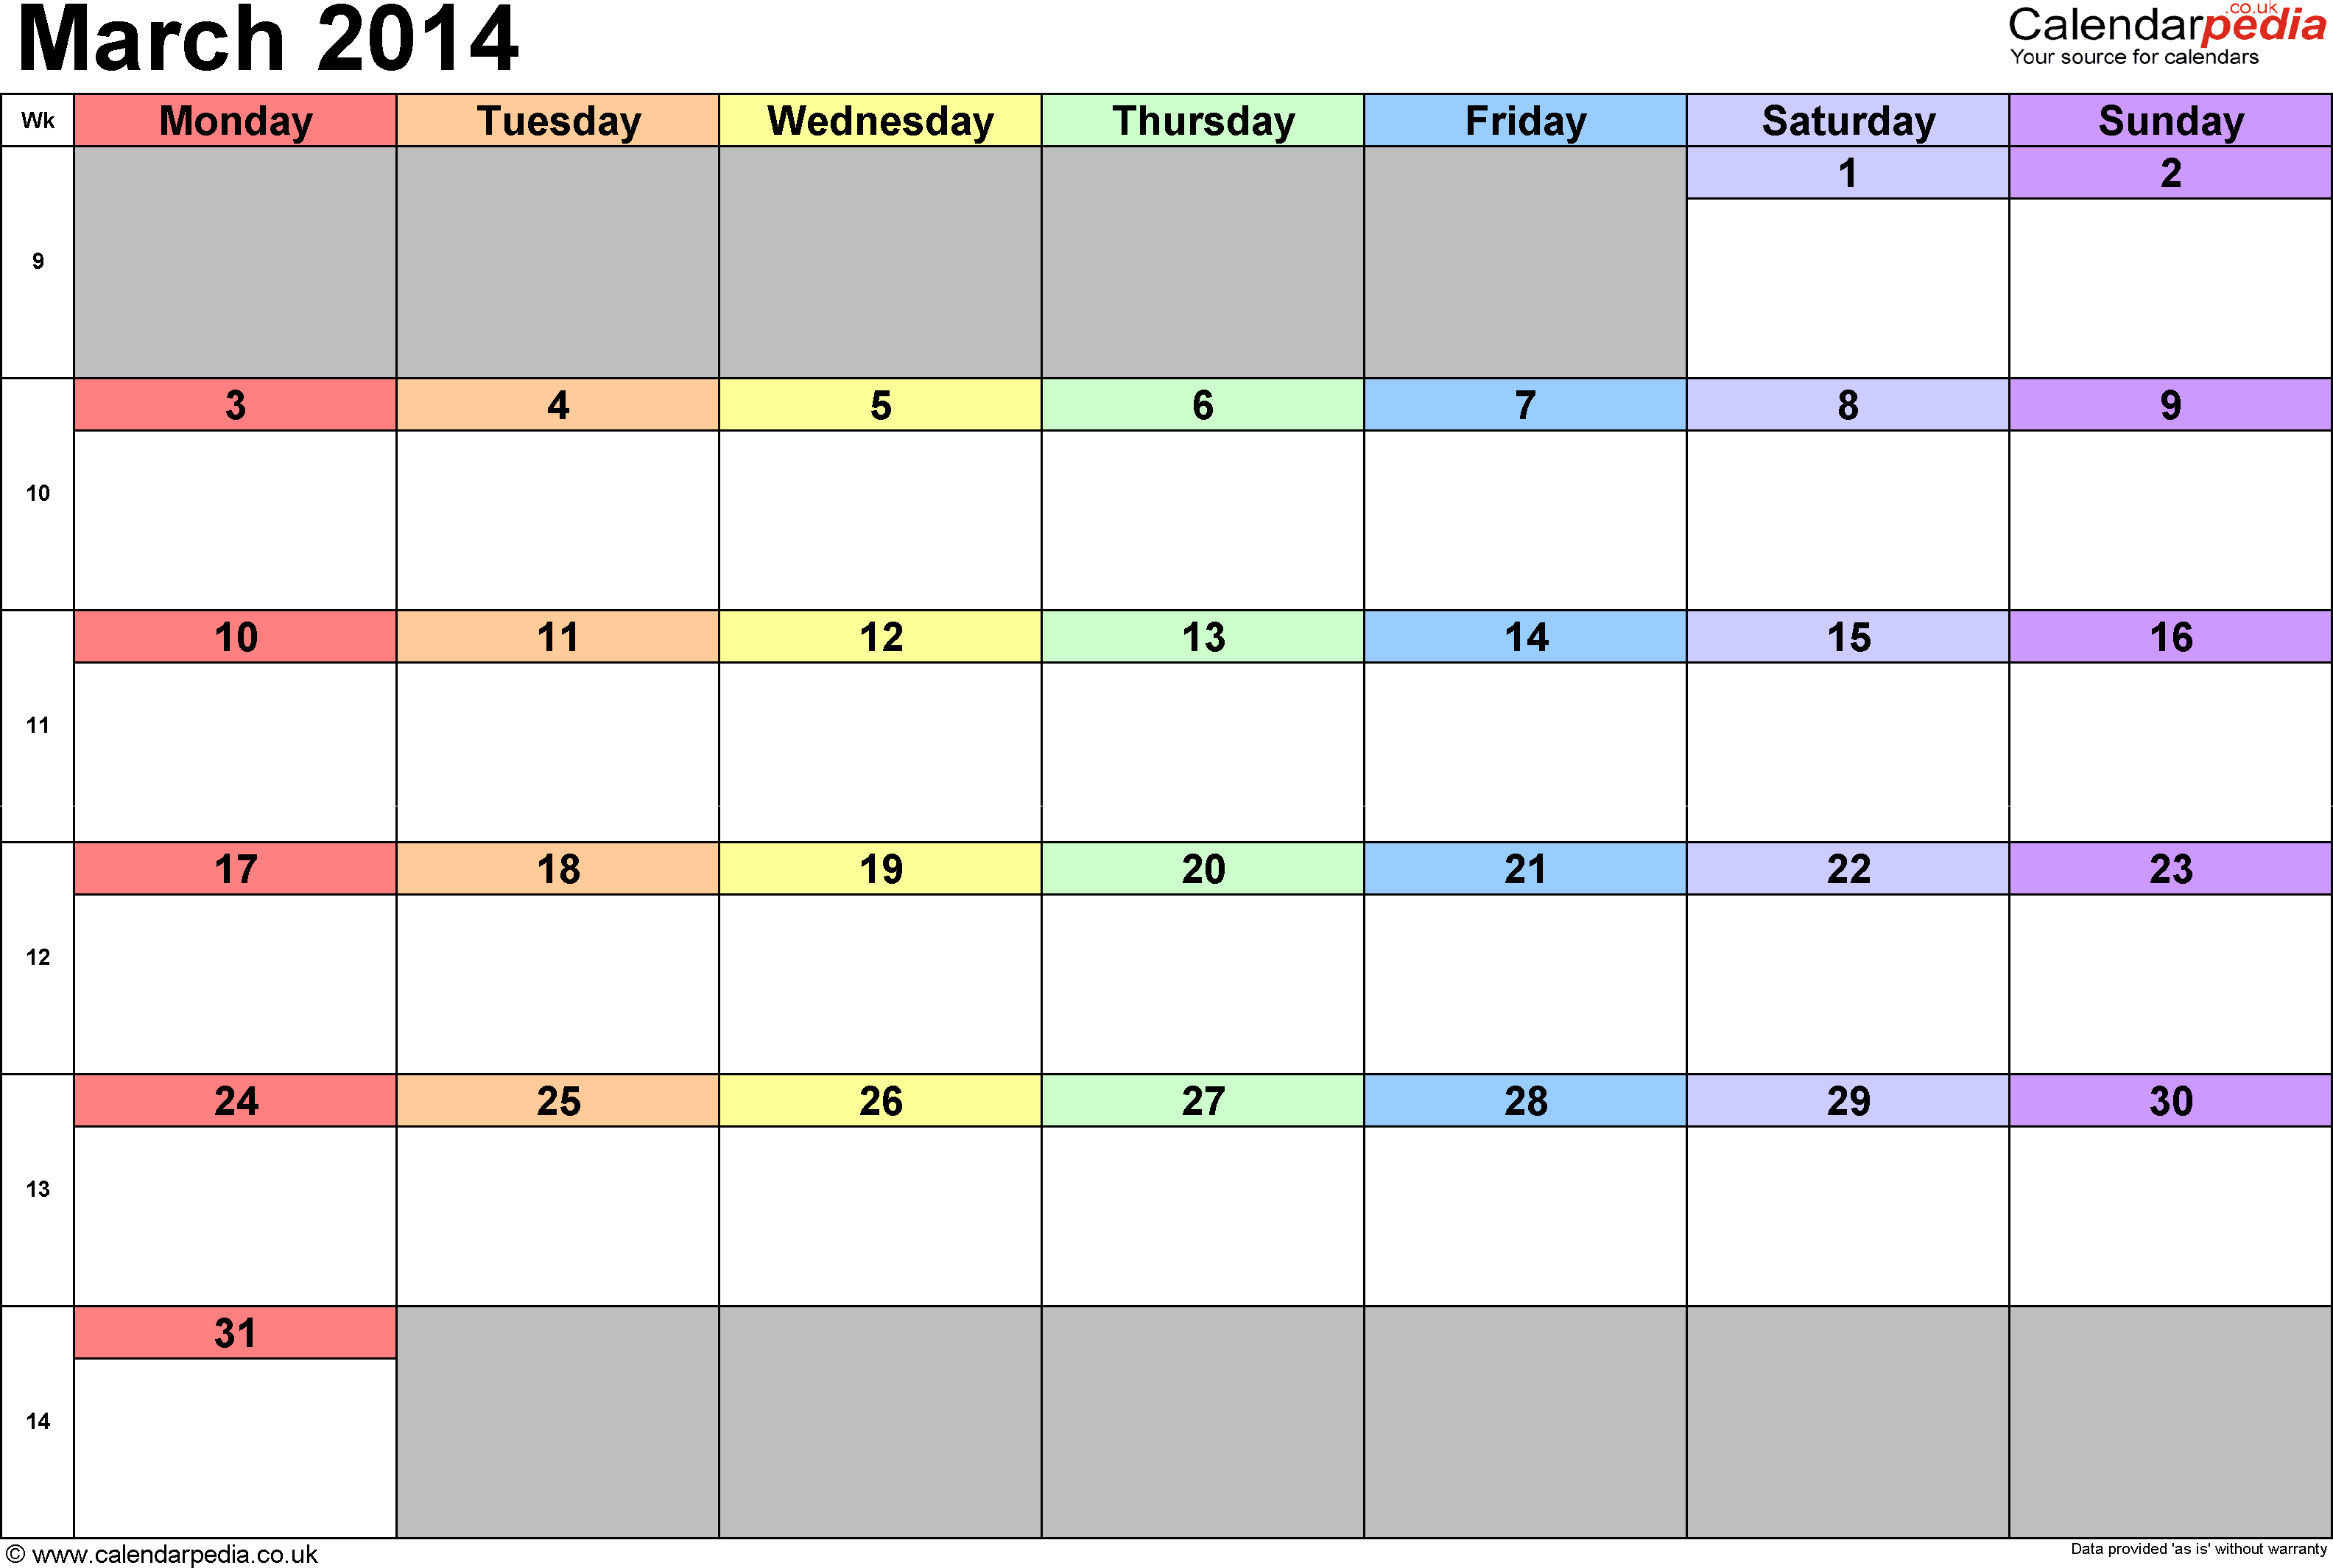 Calendar March 2014, landscape orientation, 1 page, with UK bank holidays and week numbers